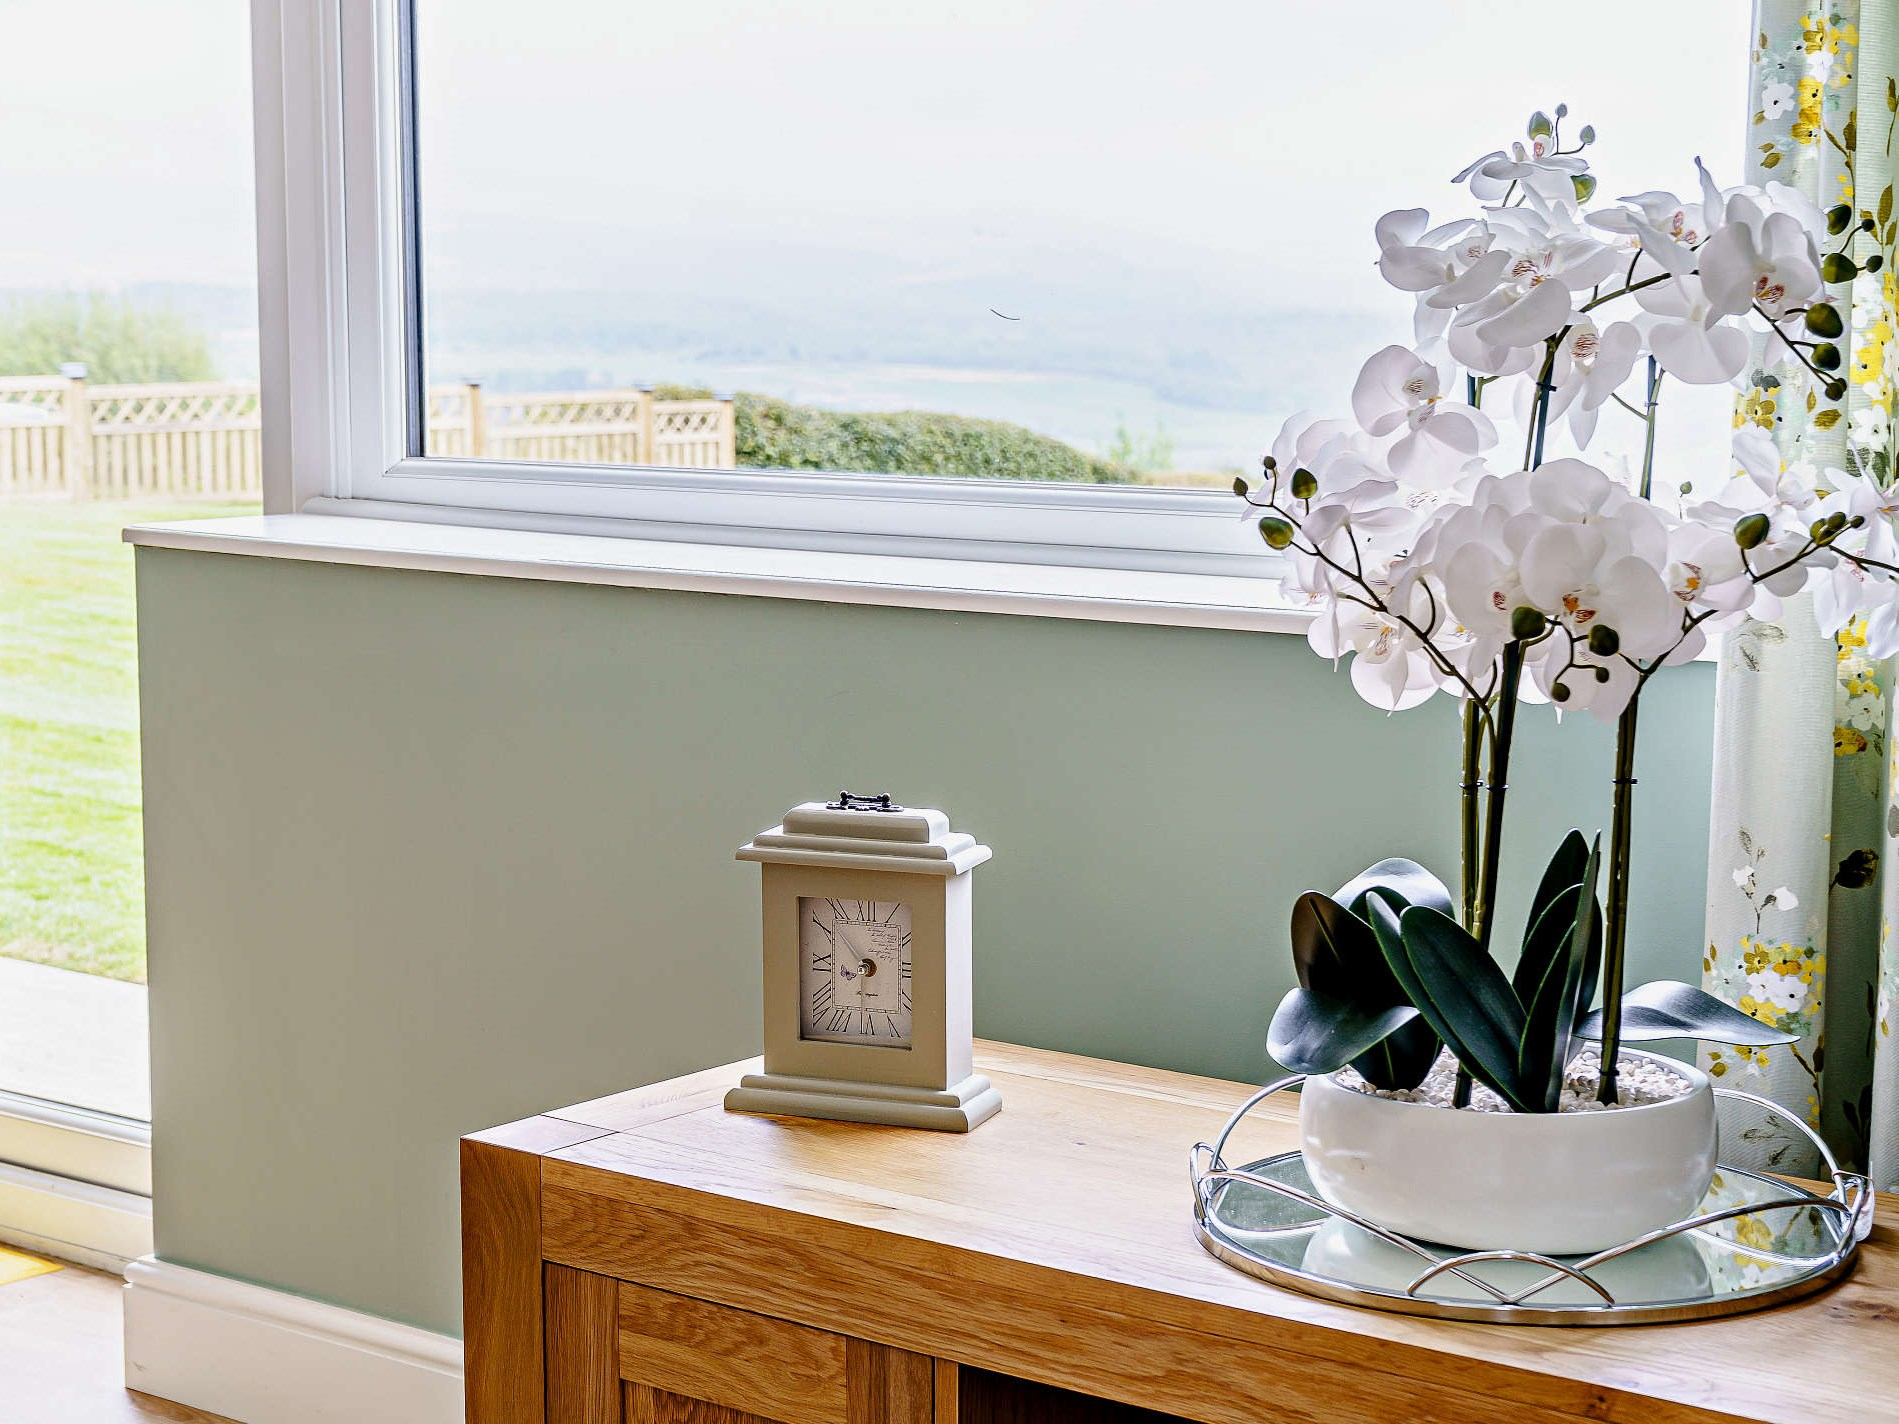 6 Bedroom Cottage in Swansea, Pembrokeshire and the South